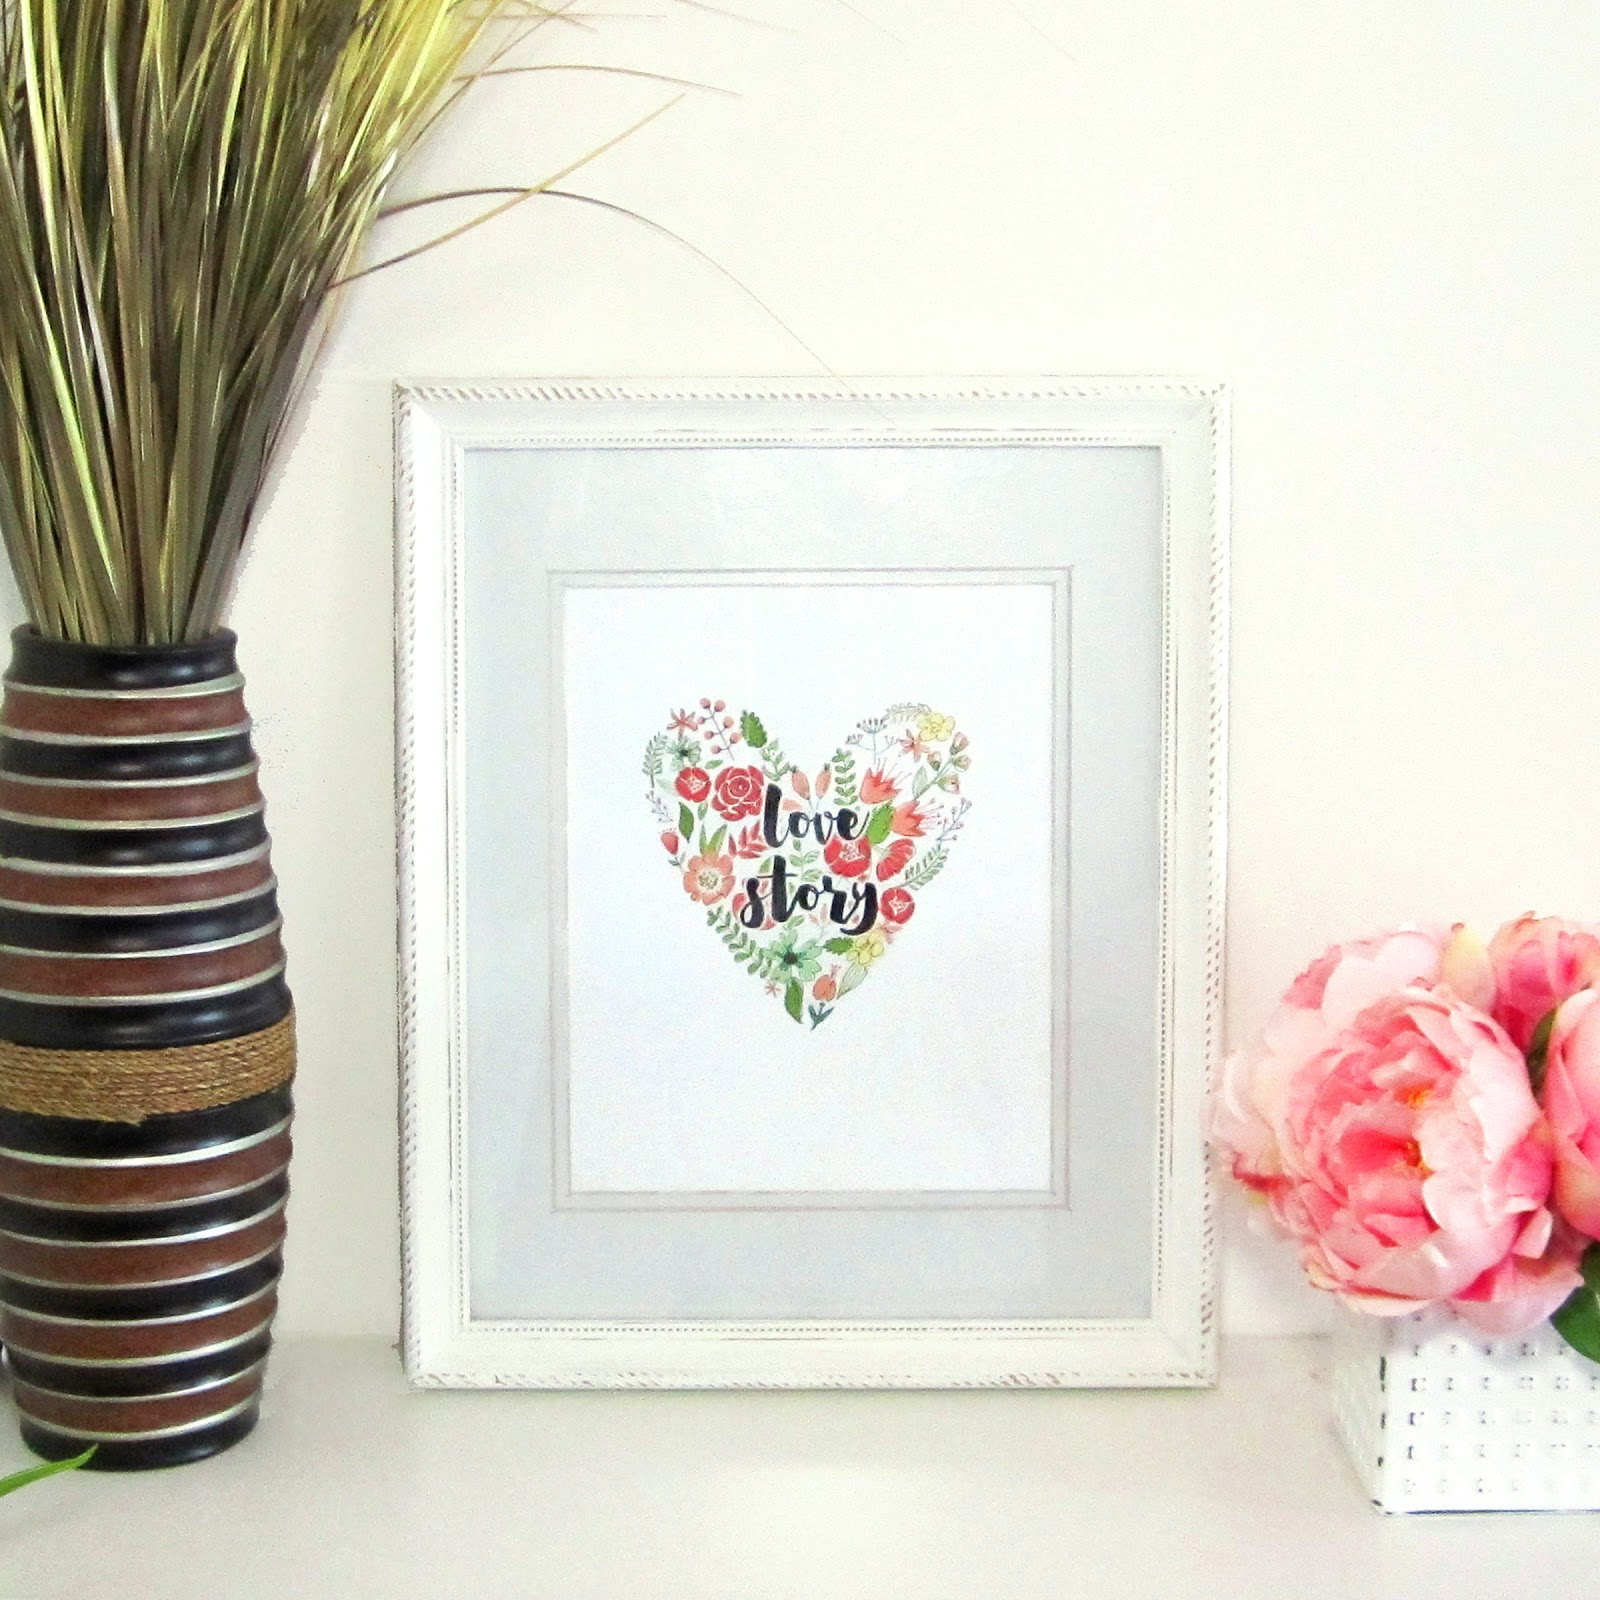 EASILY CREATE PRINTABLES FOR FRAMED WALL ART INCLUDING A FLORAL WREATH AND  MODERN CALLIGRAPHY BRUSH FONT